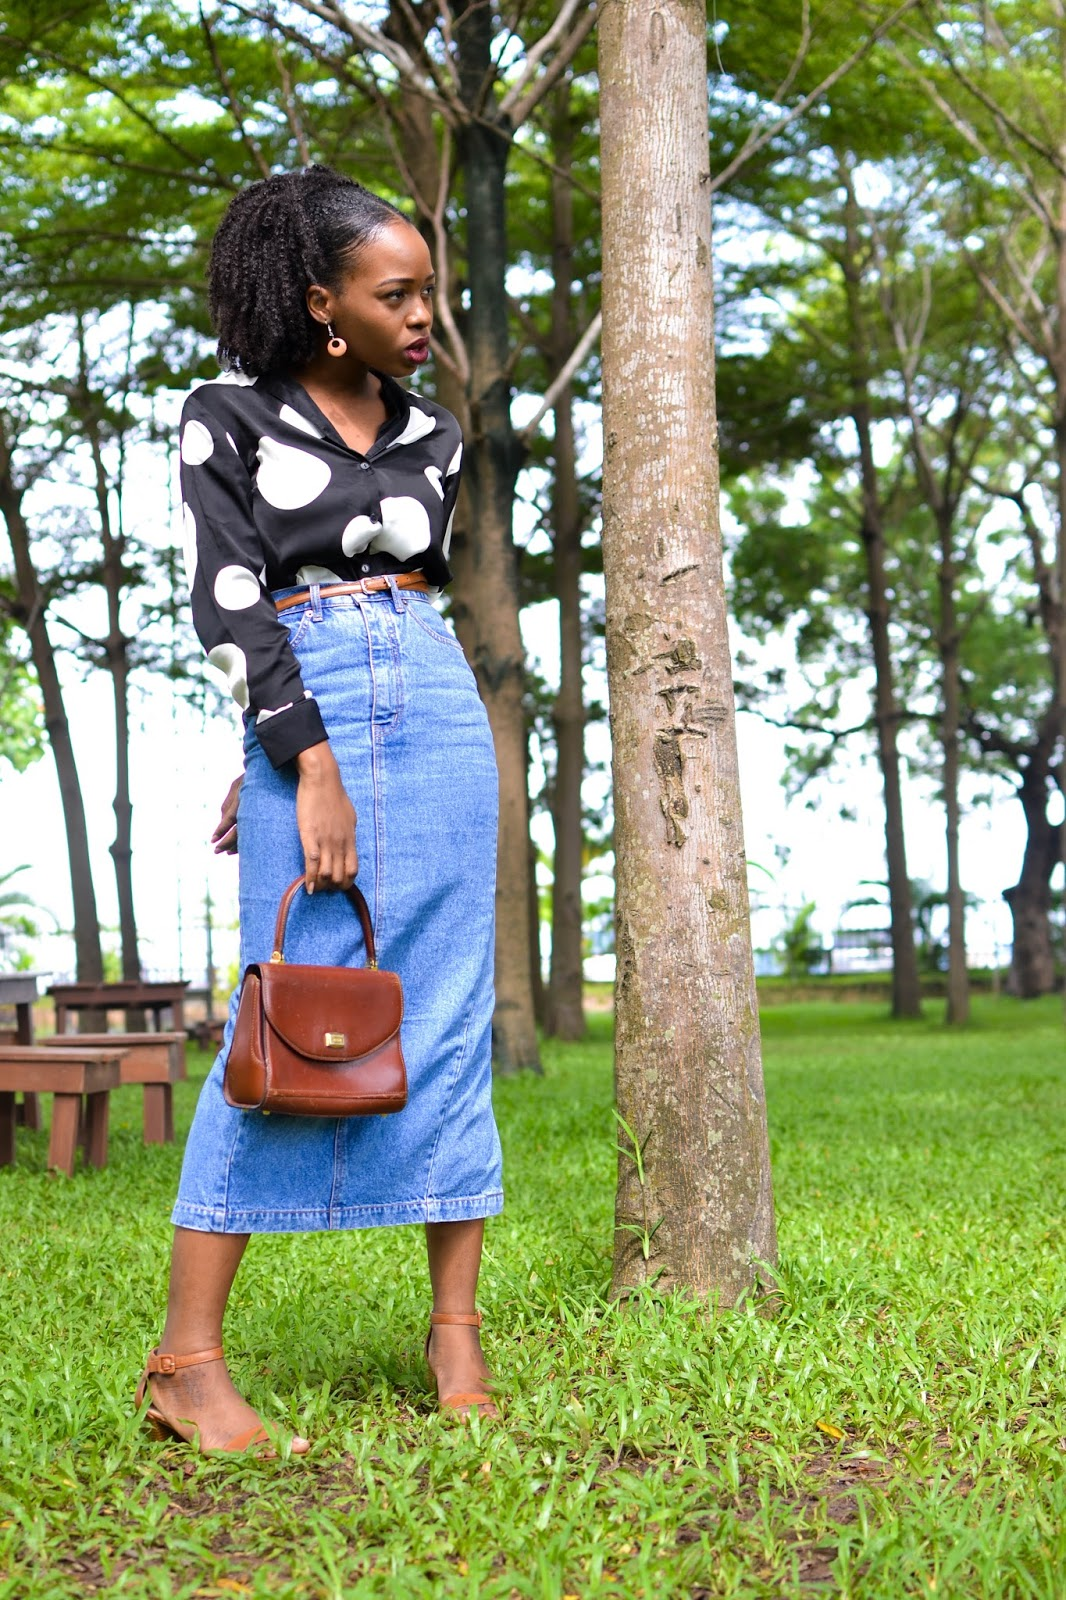 Black and White Polka Dot Shirt and Denim Skirt